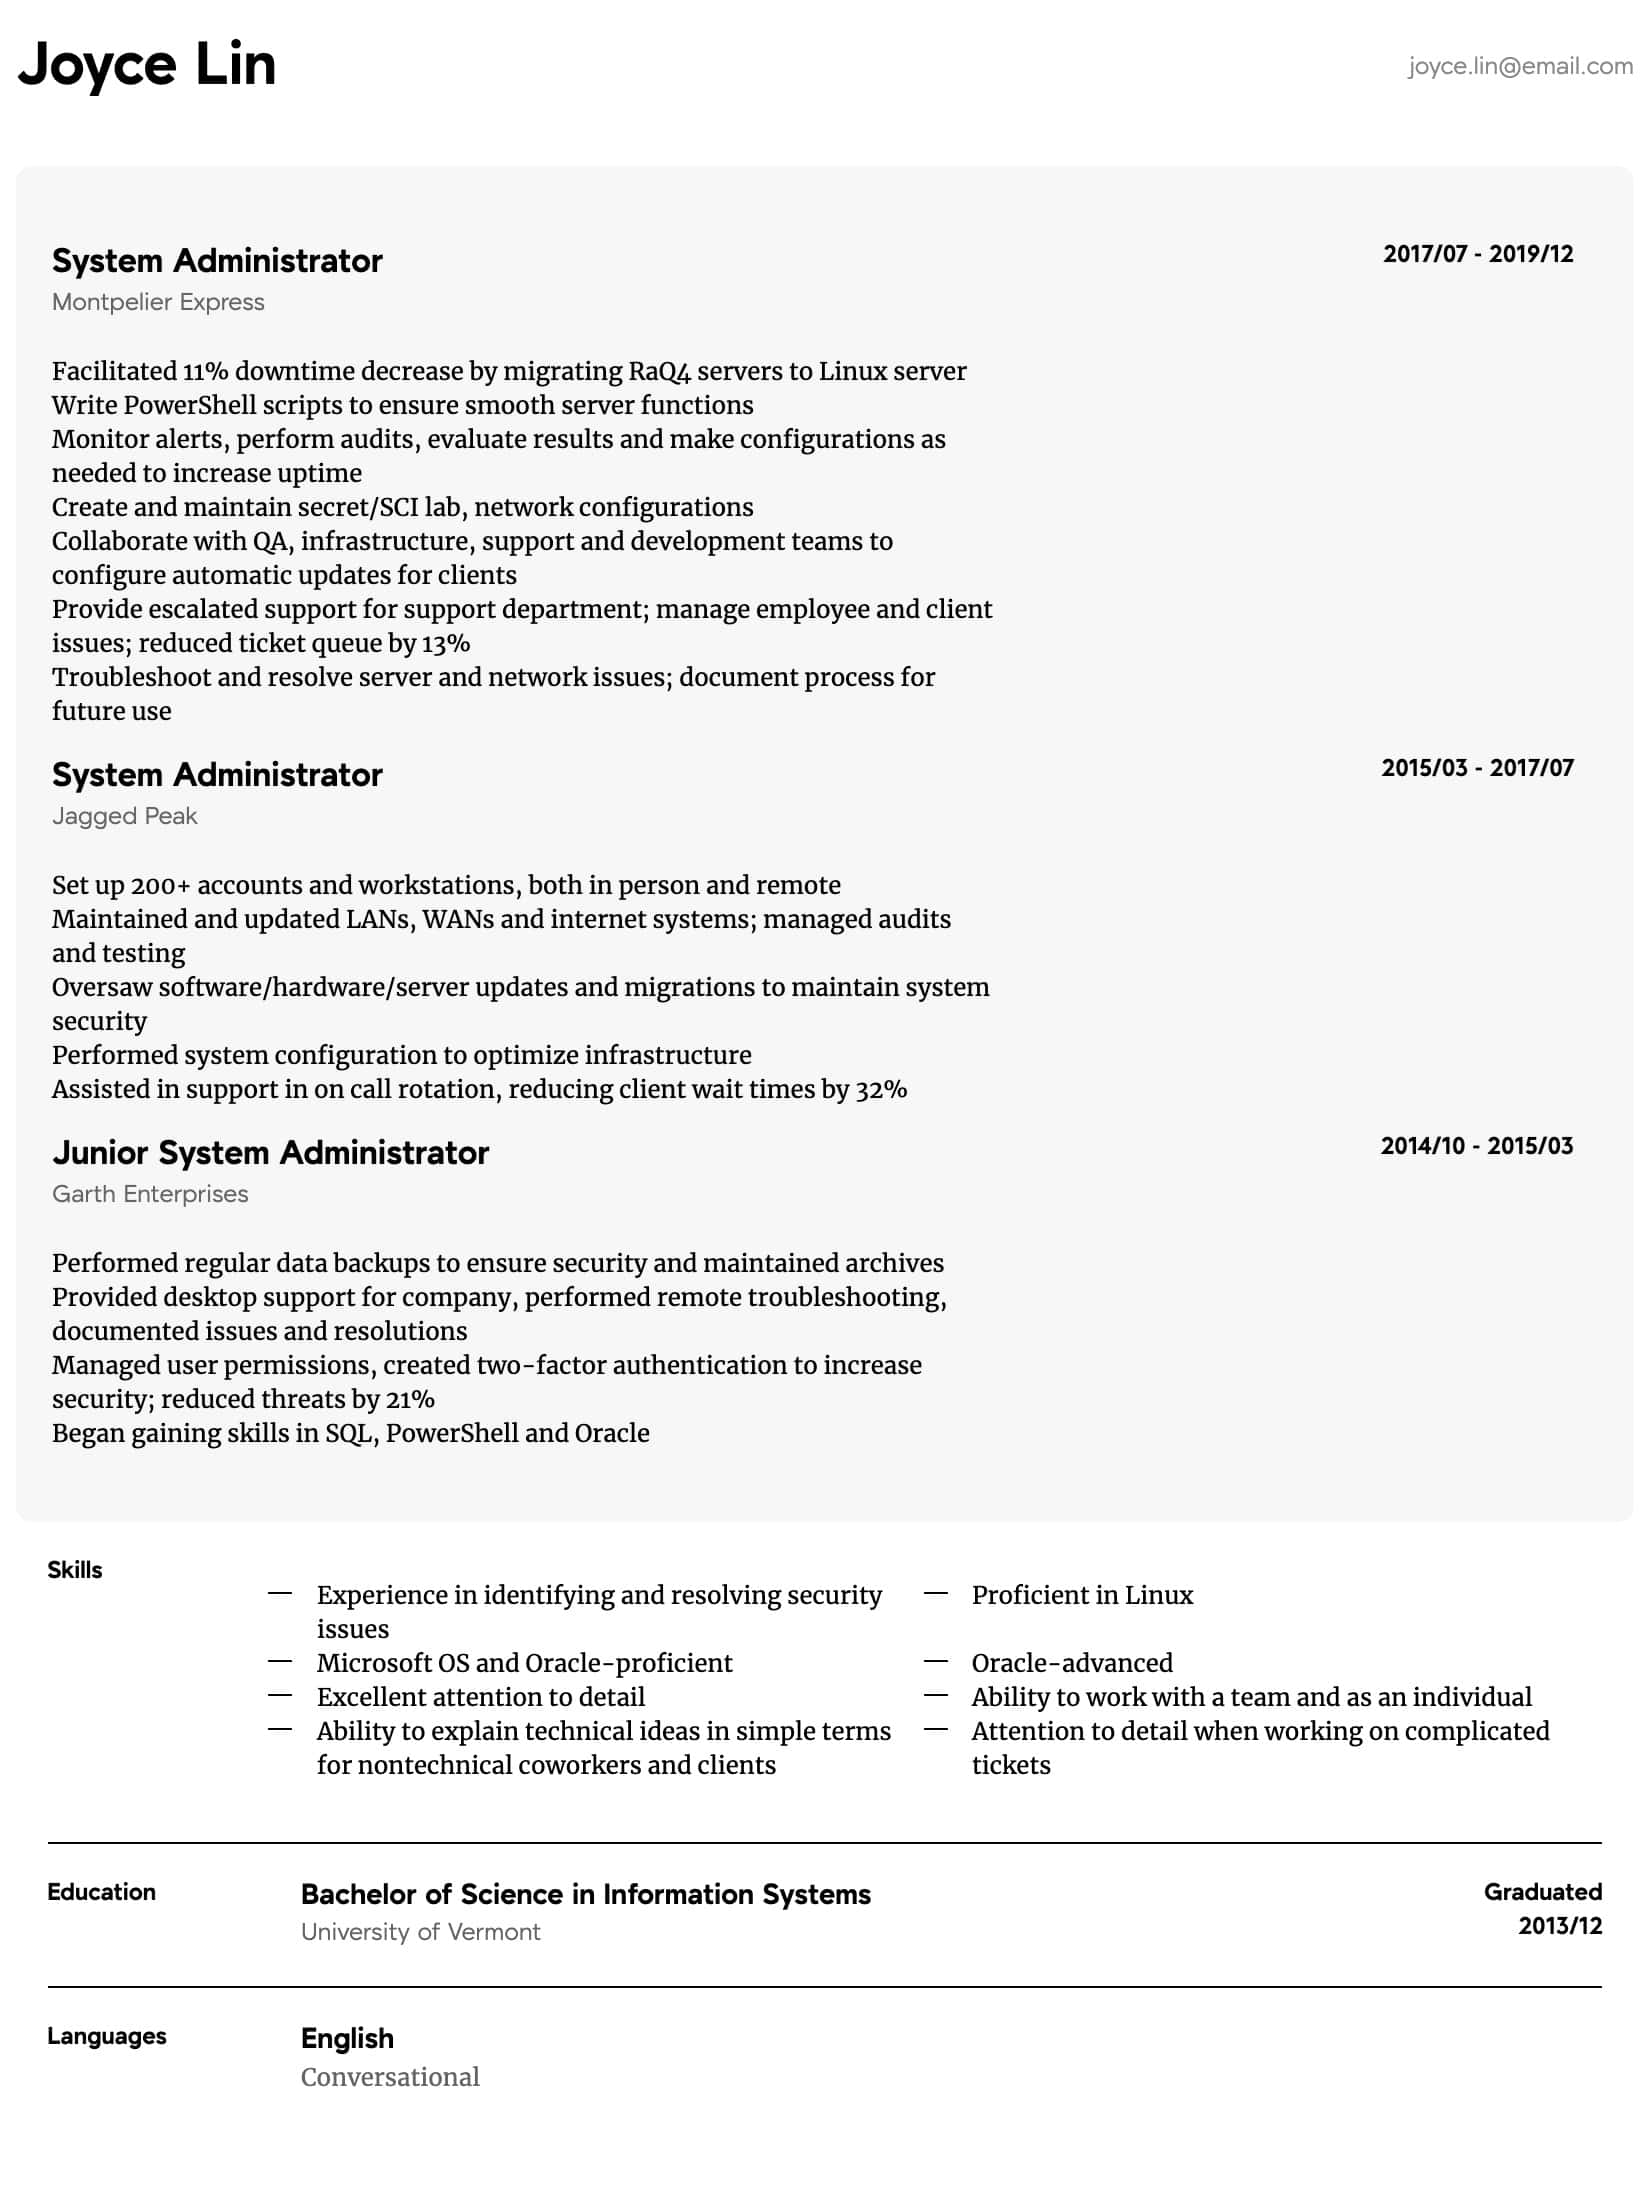 system administrator resume samples all experience levels windows sample intermediate Resume Windows System Administrator Sample Resume Experience